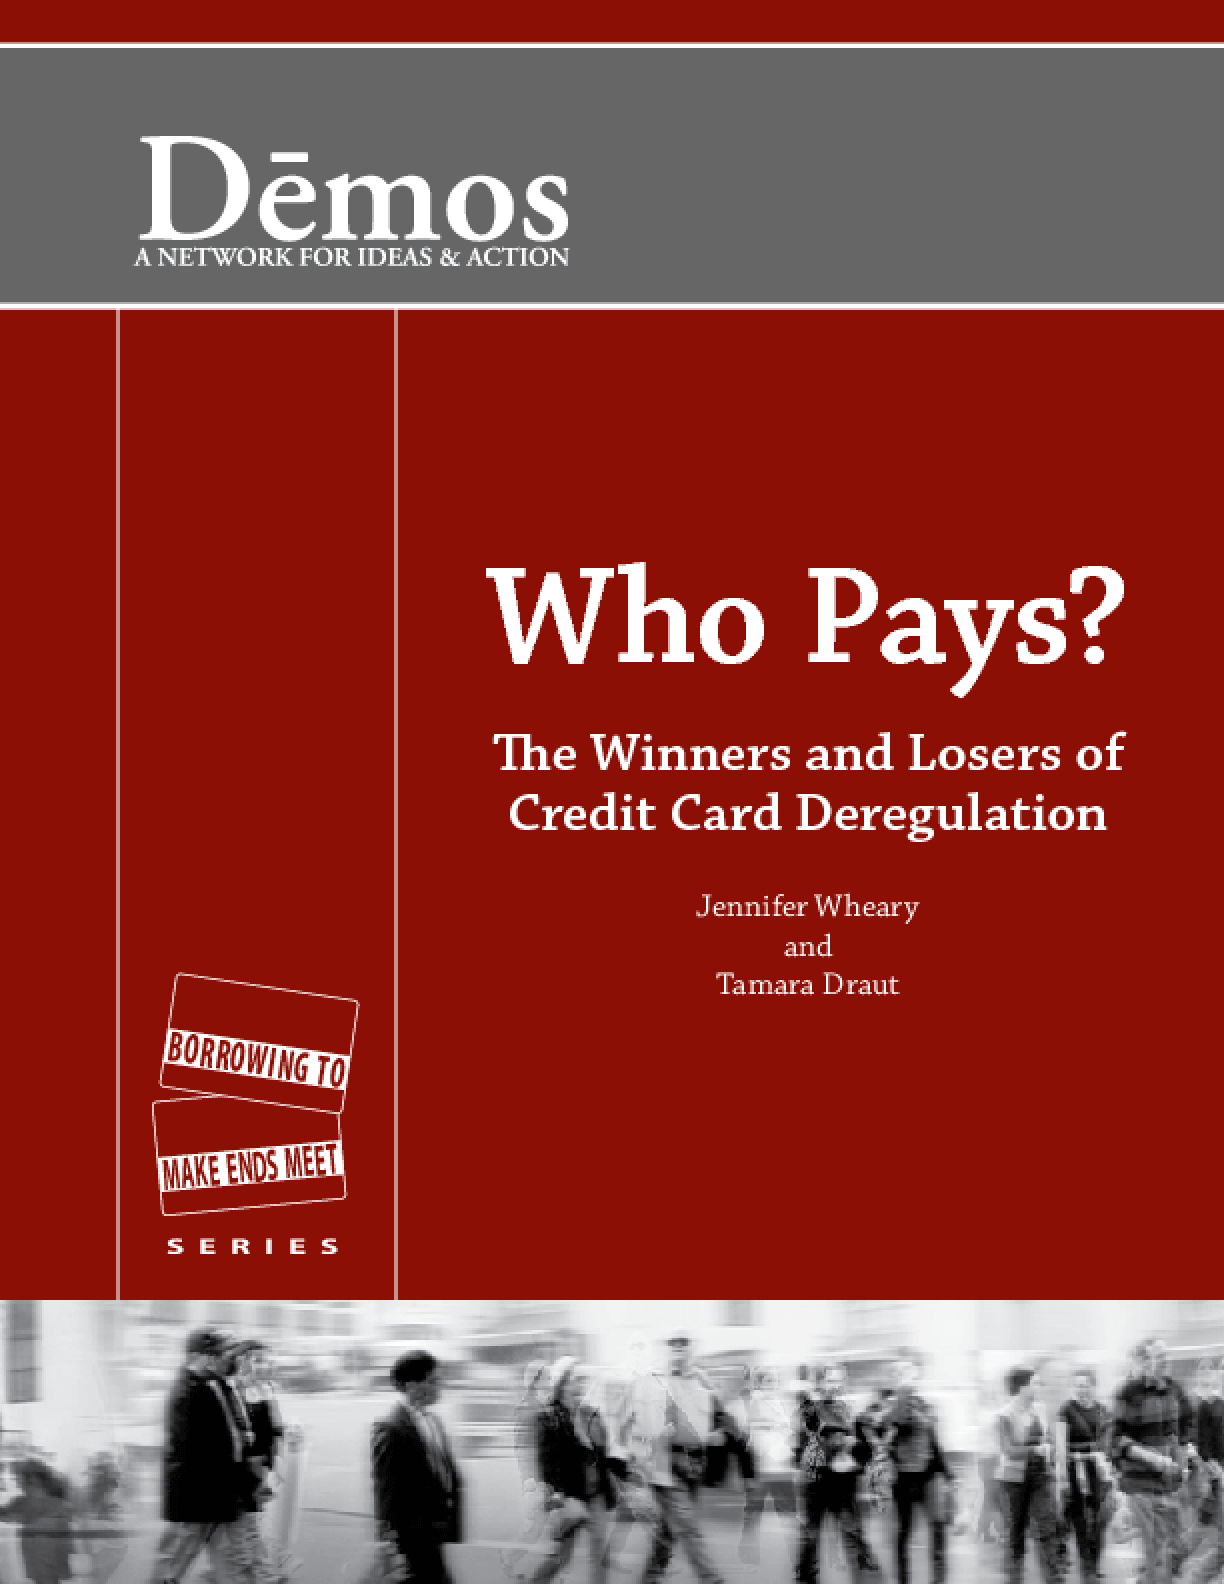 Who Pays?: The Winners and Losers of Credit Card Deregulation